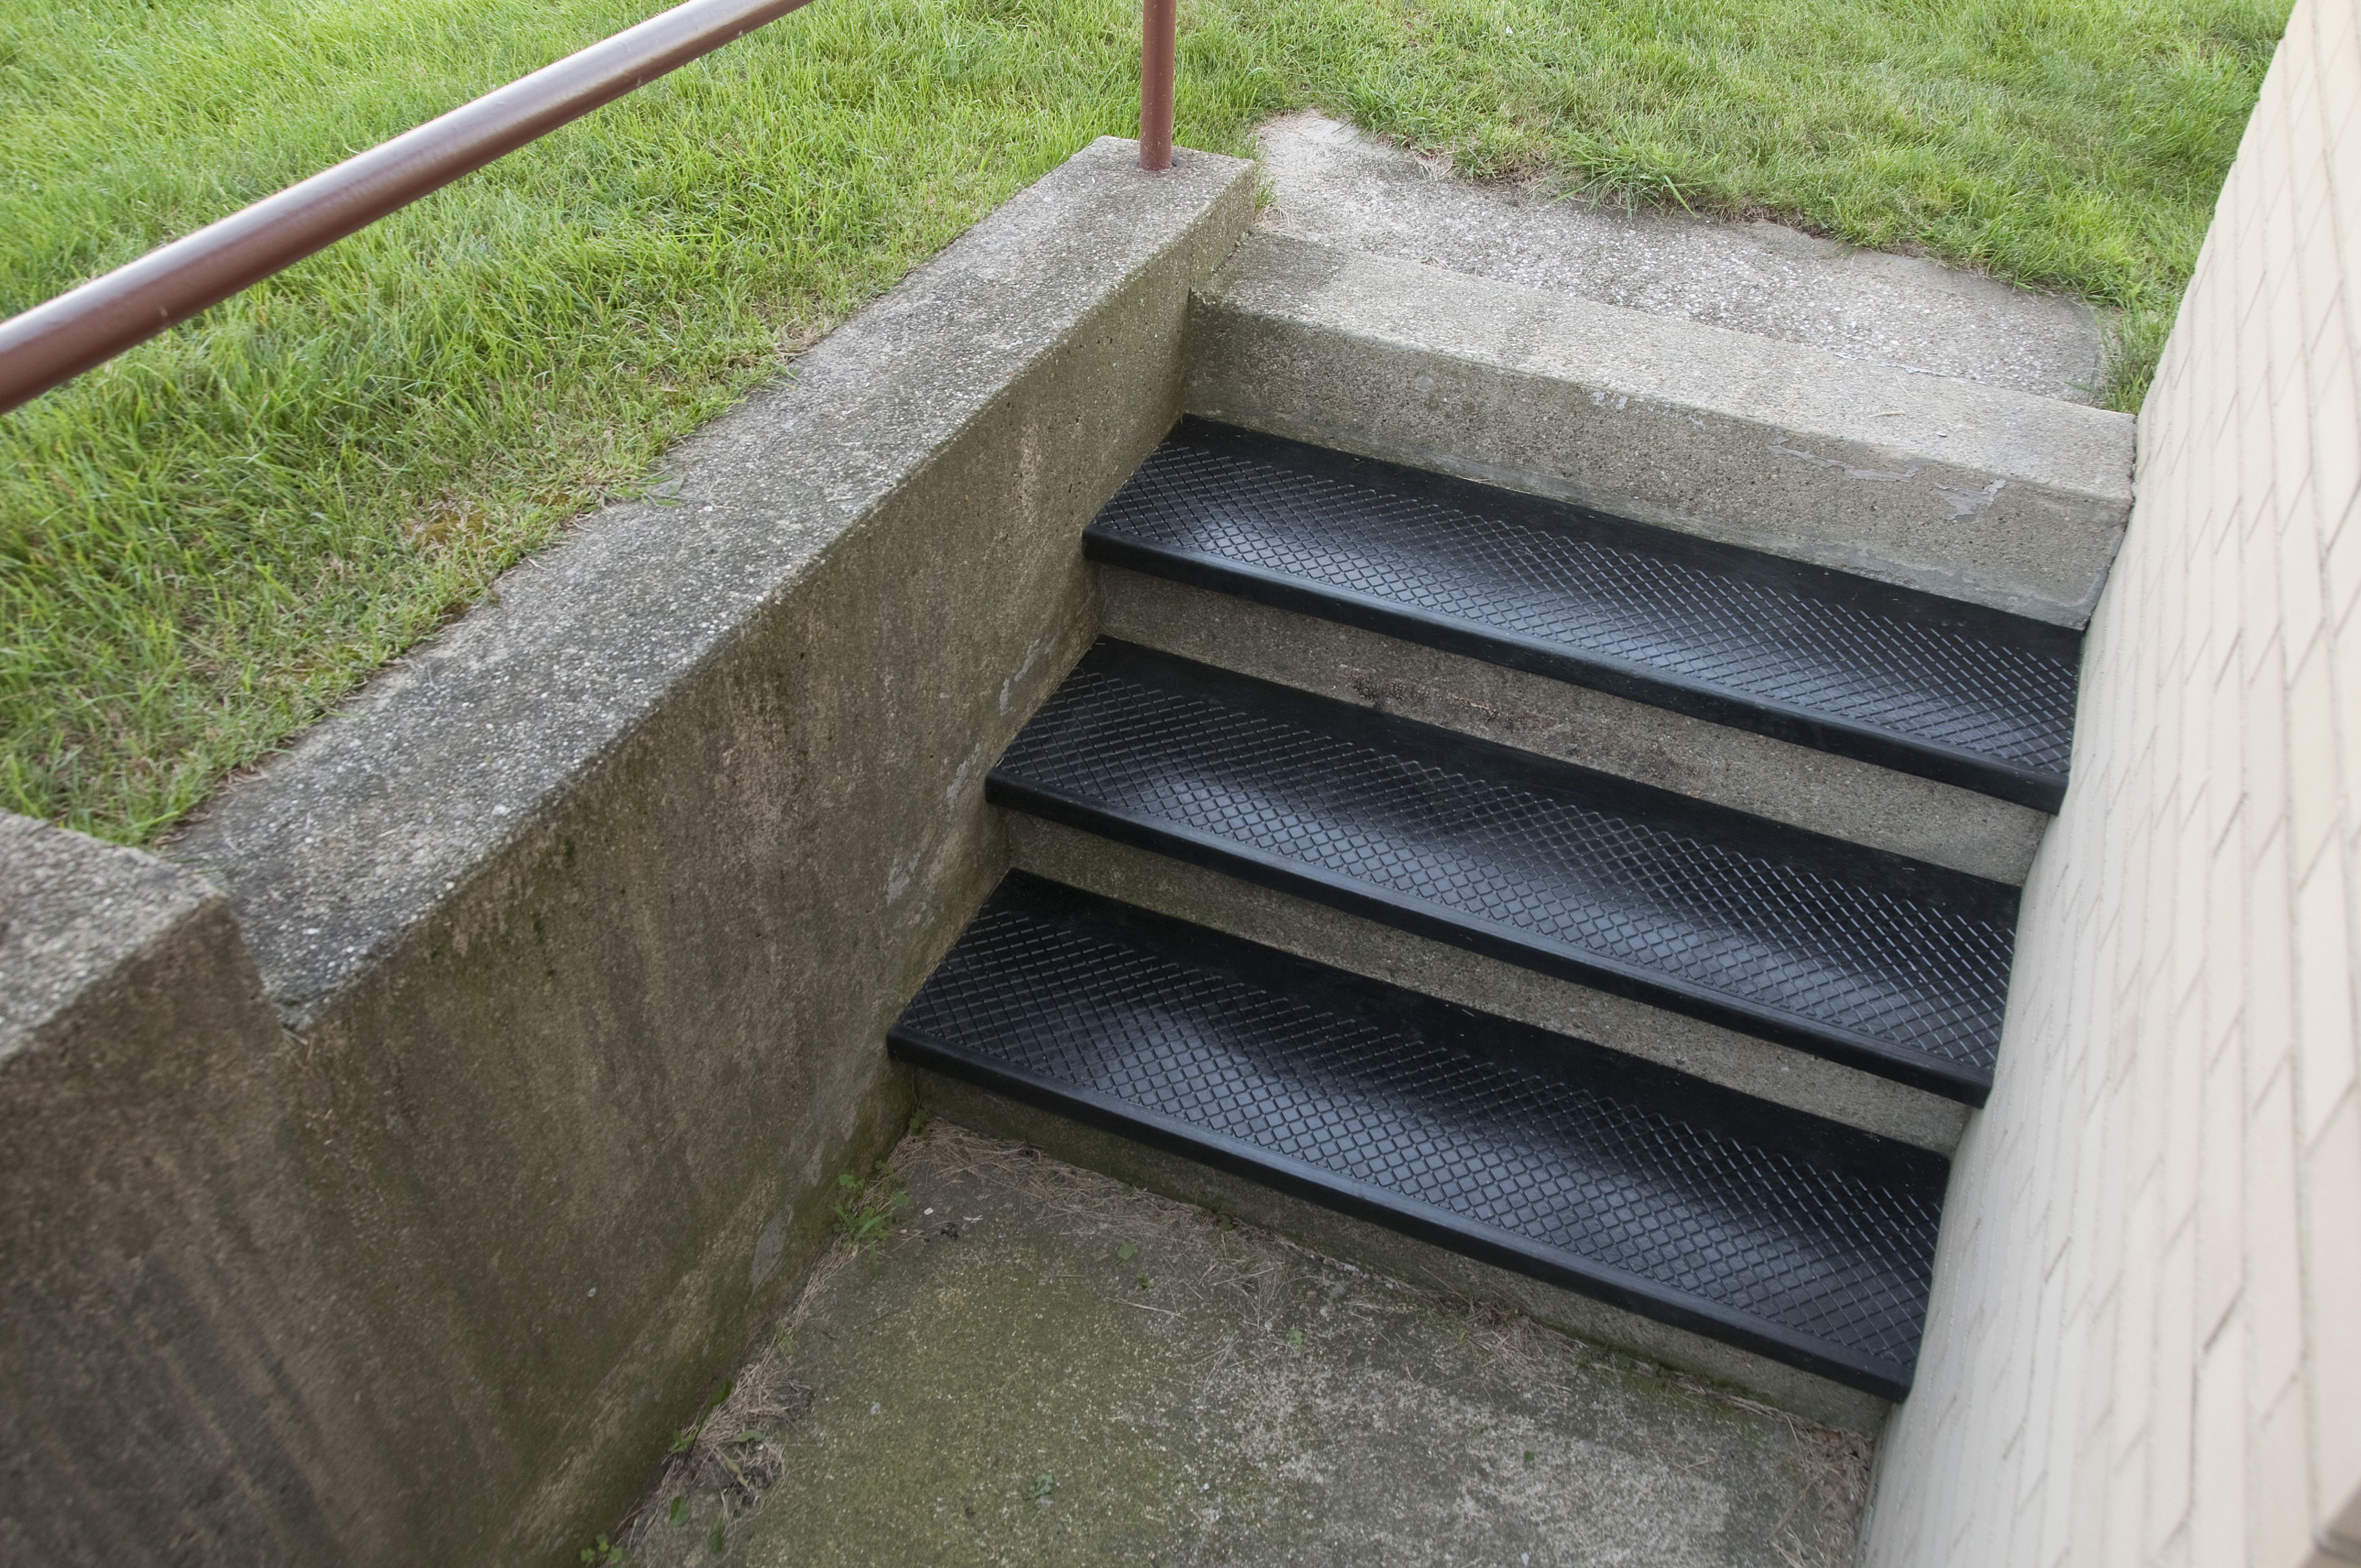 Outside Stairs Outdoor Rubber Stair Treads Are Excellent For Slippery